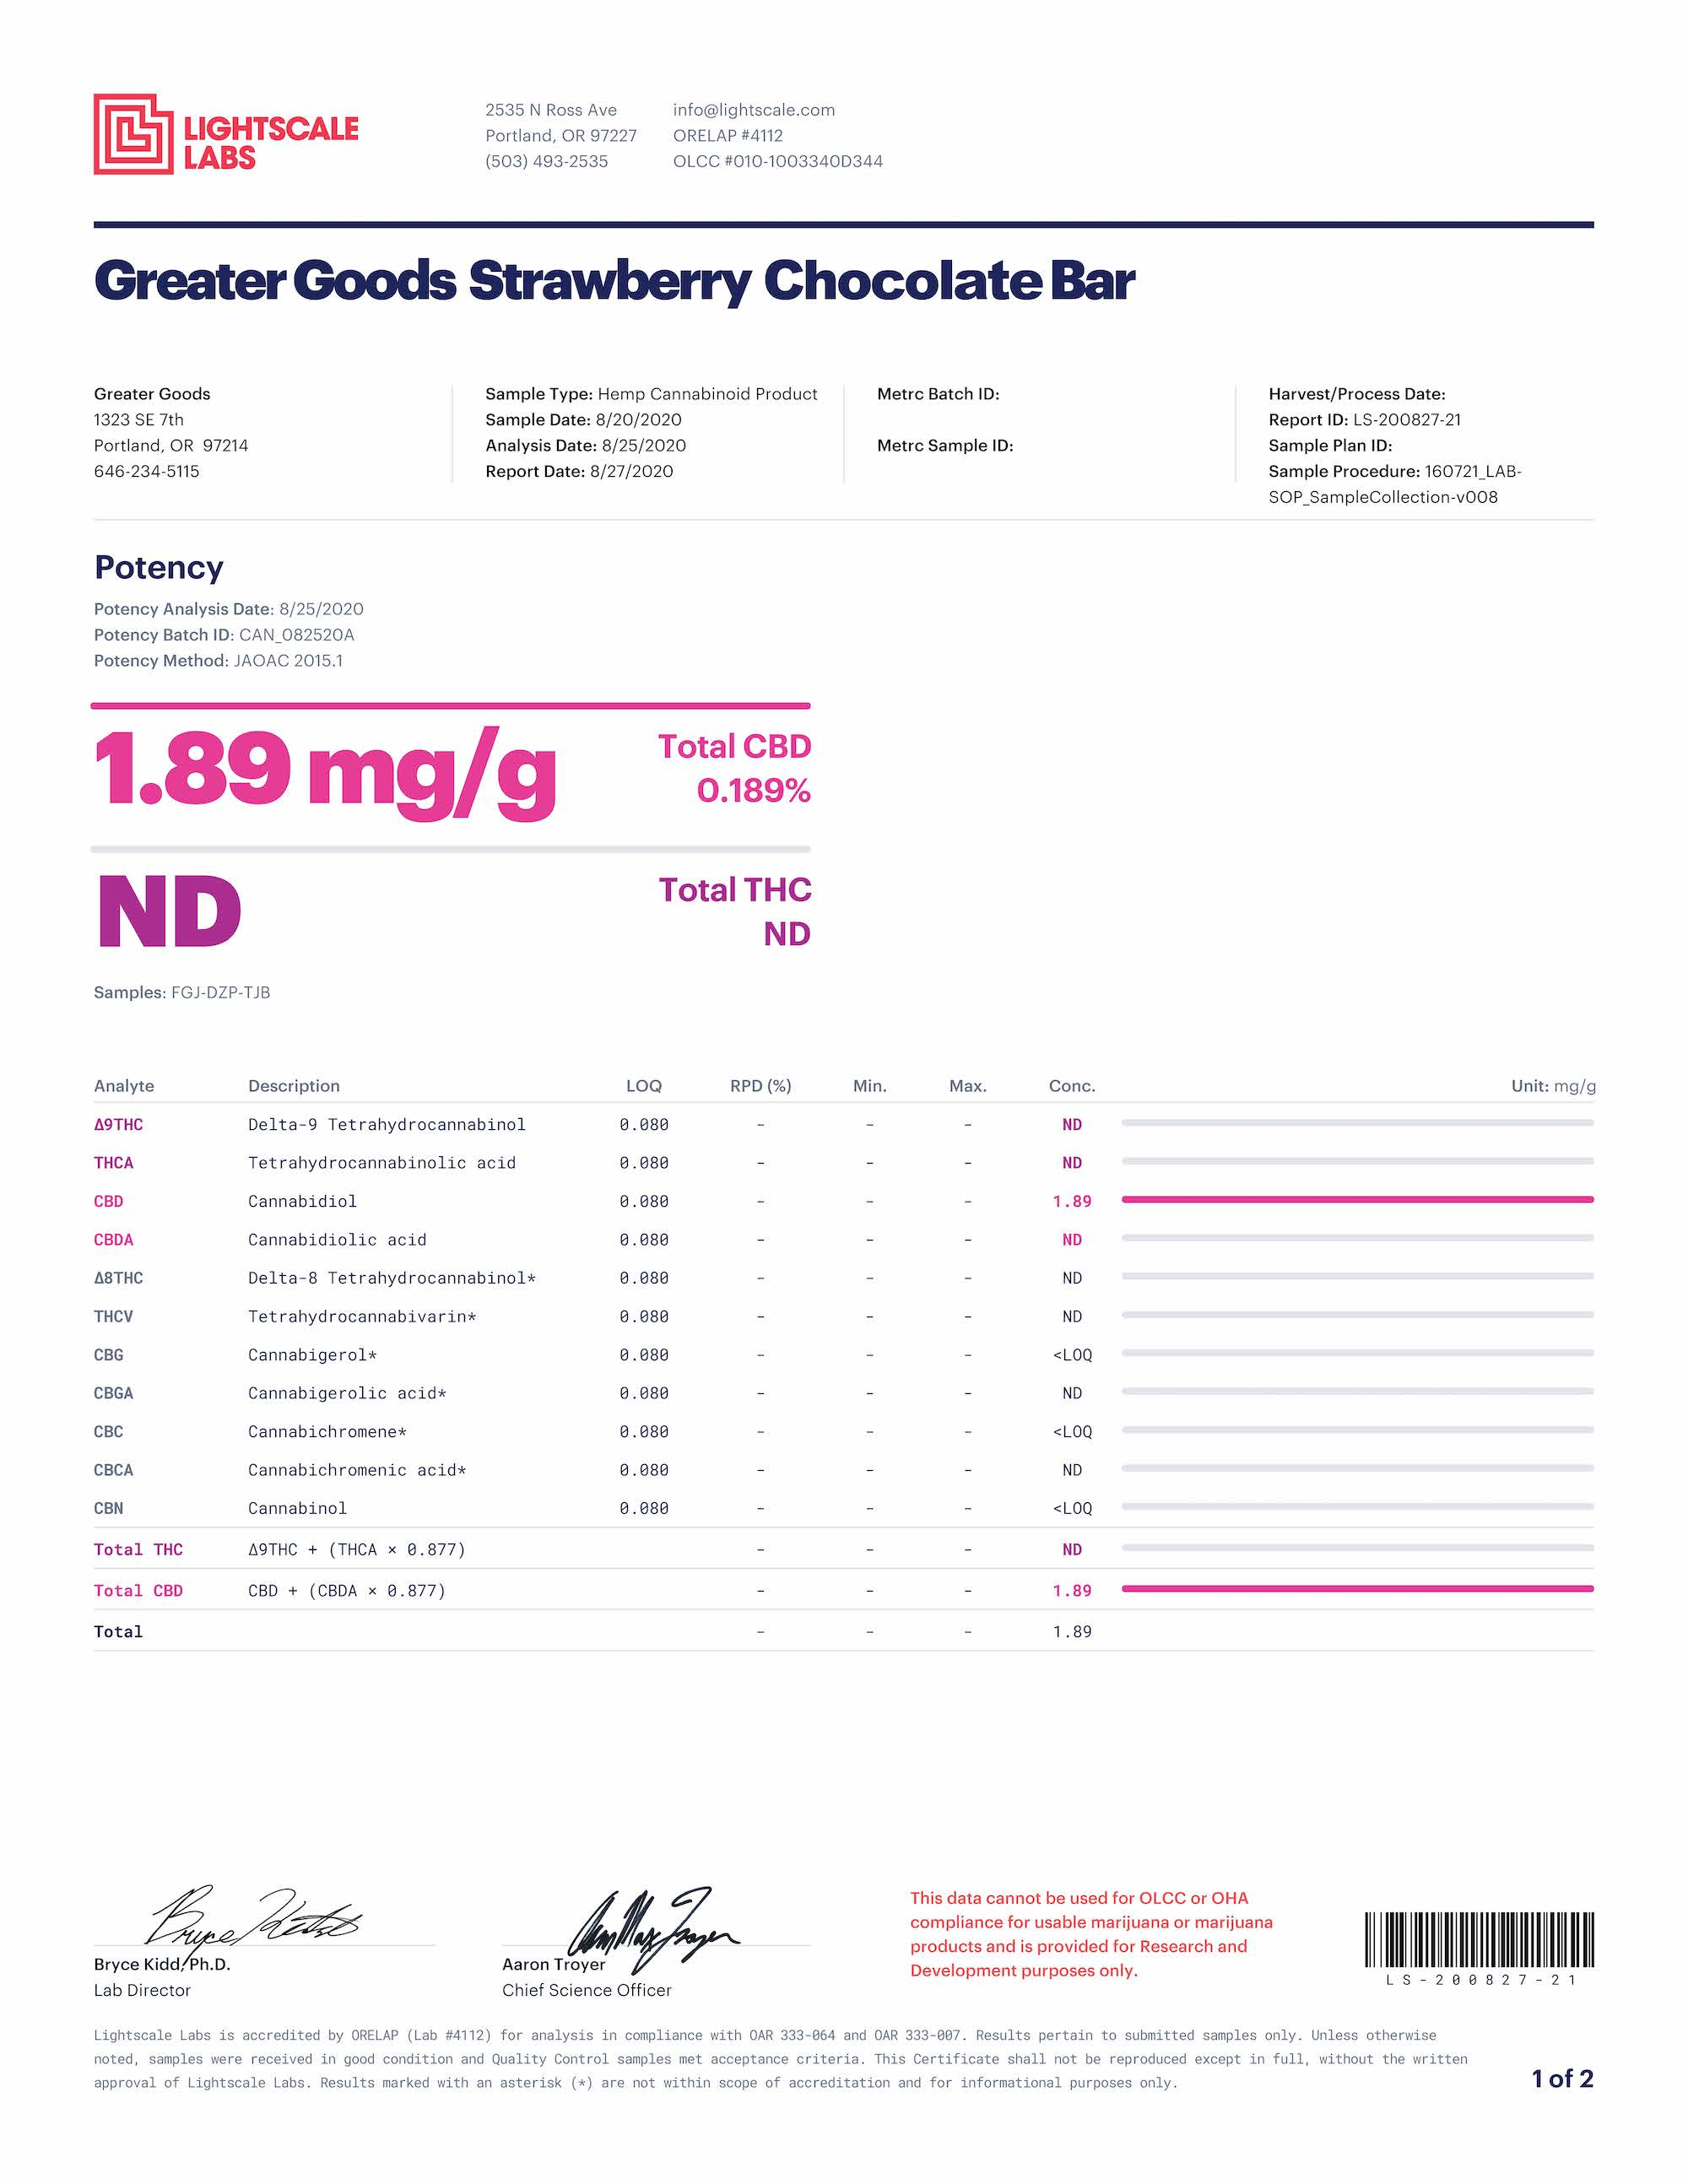 Chocolate Covered Strawberry Chocolate Bar Certificate of Analysis